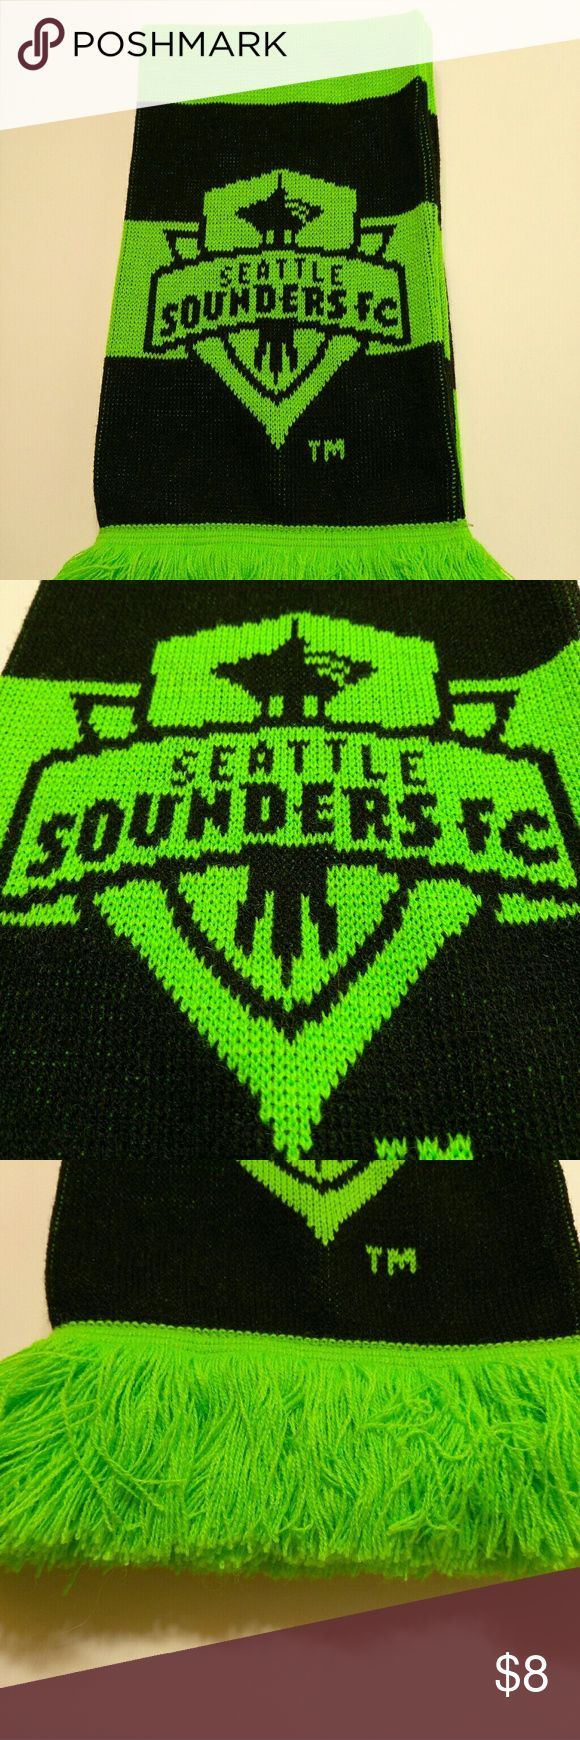 Seattle Sounders FC Scarf Seattle Sounders FC scarf in excellent used condition.  Show some team pride this winter or wear to a game! Accessories Scarves & Wraps